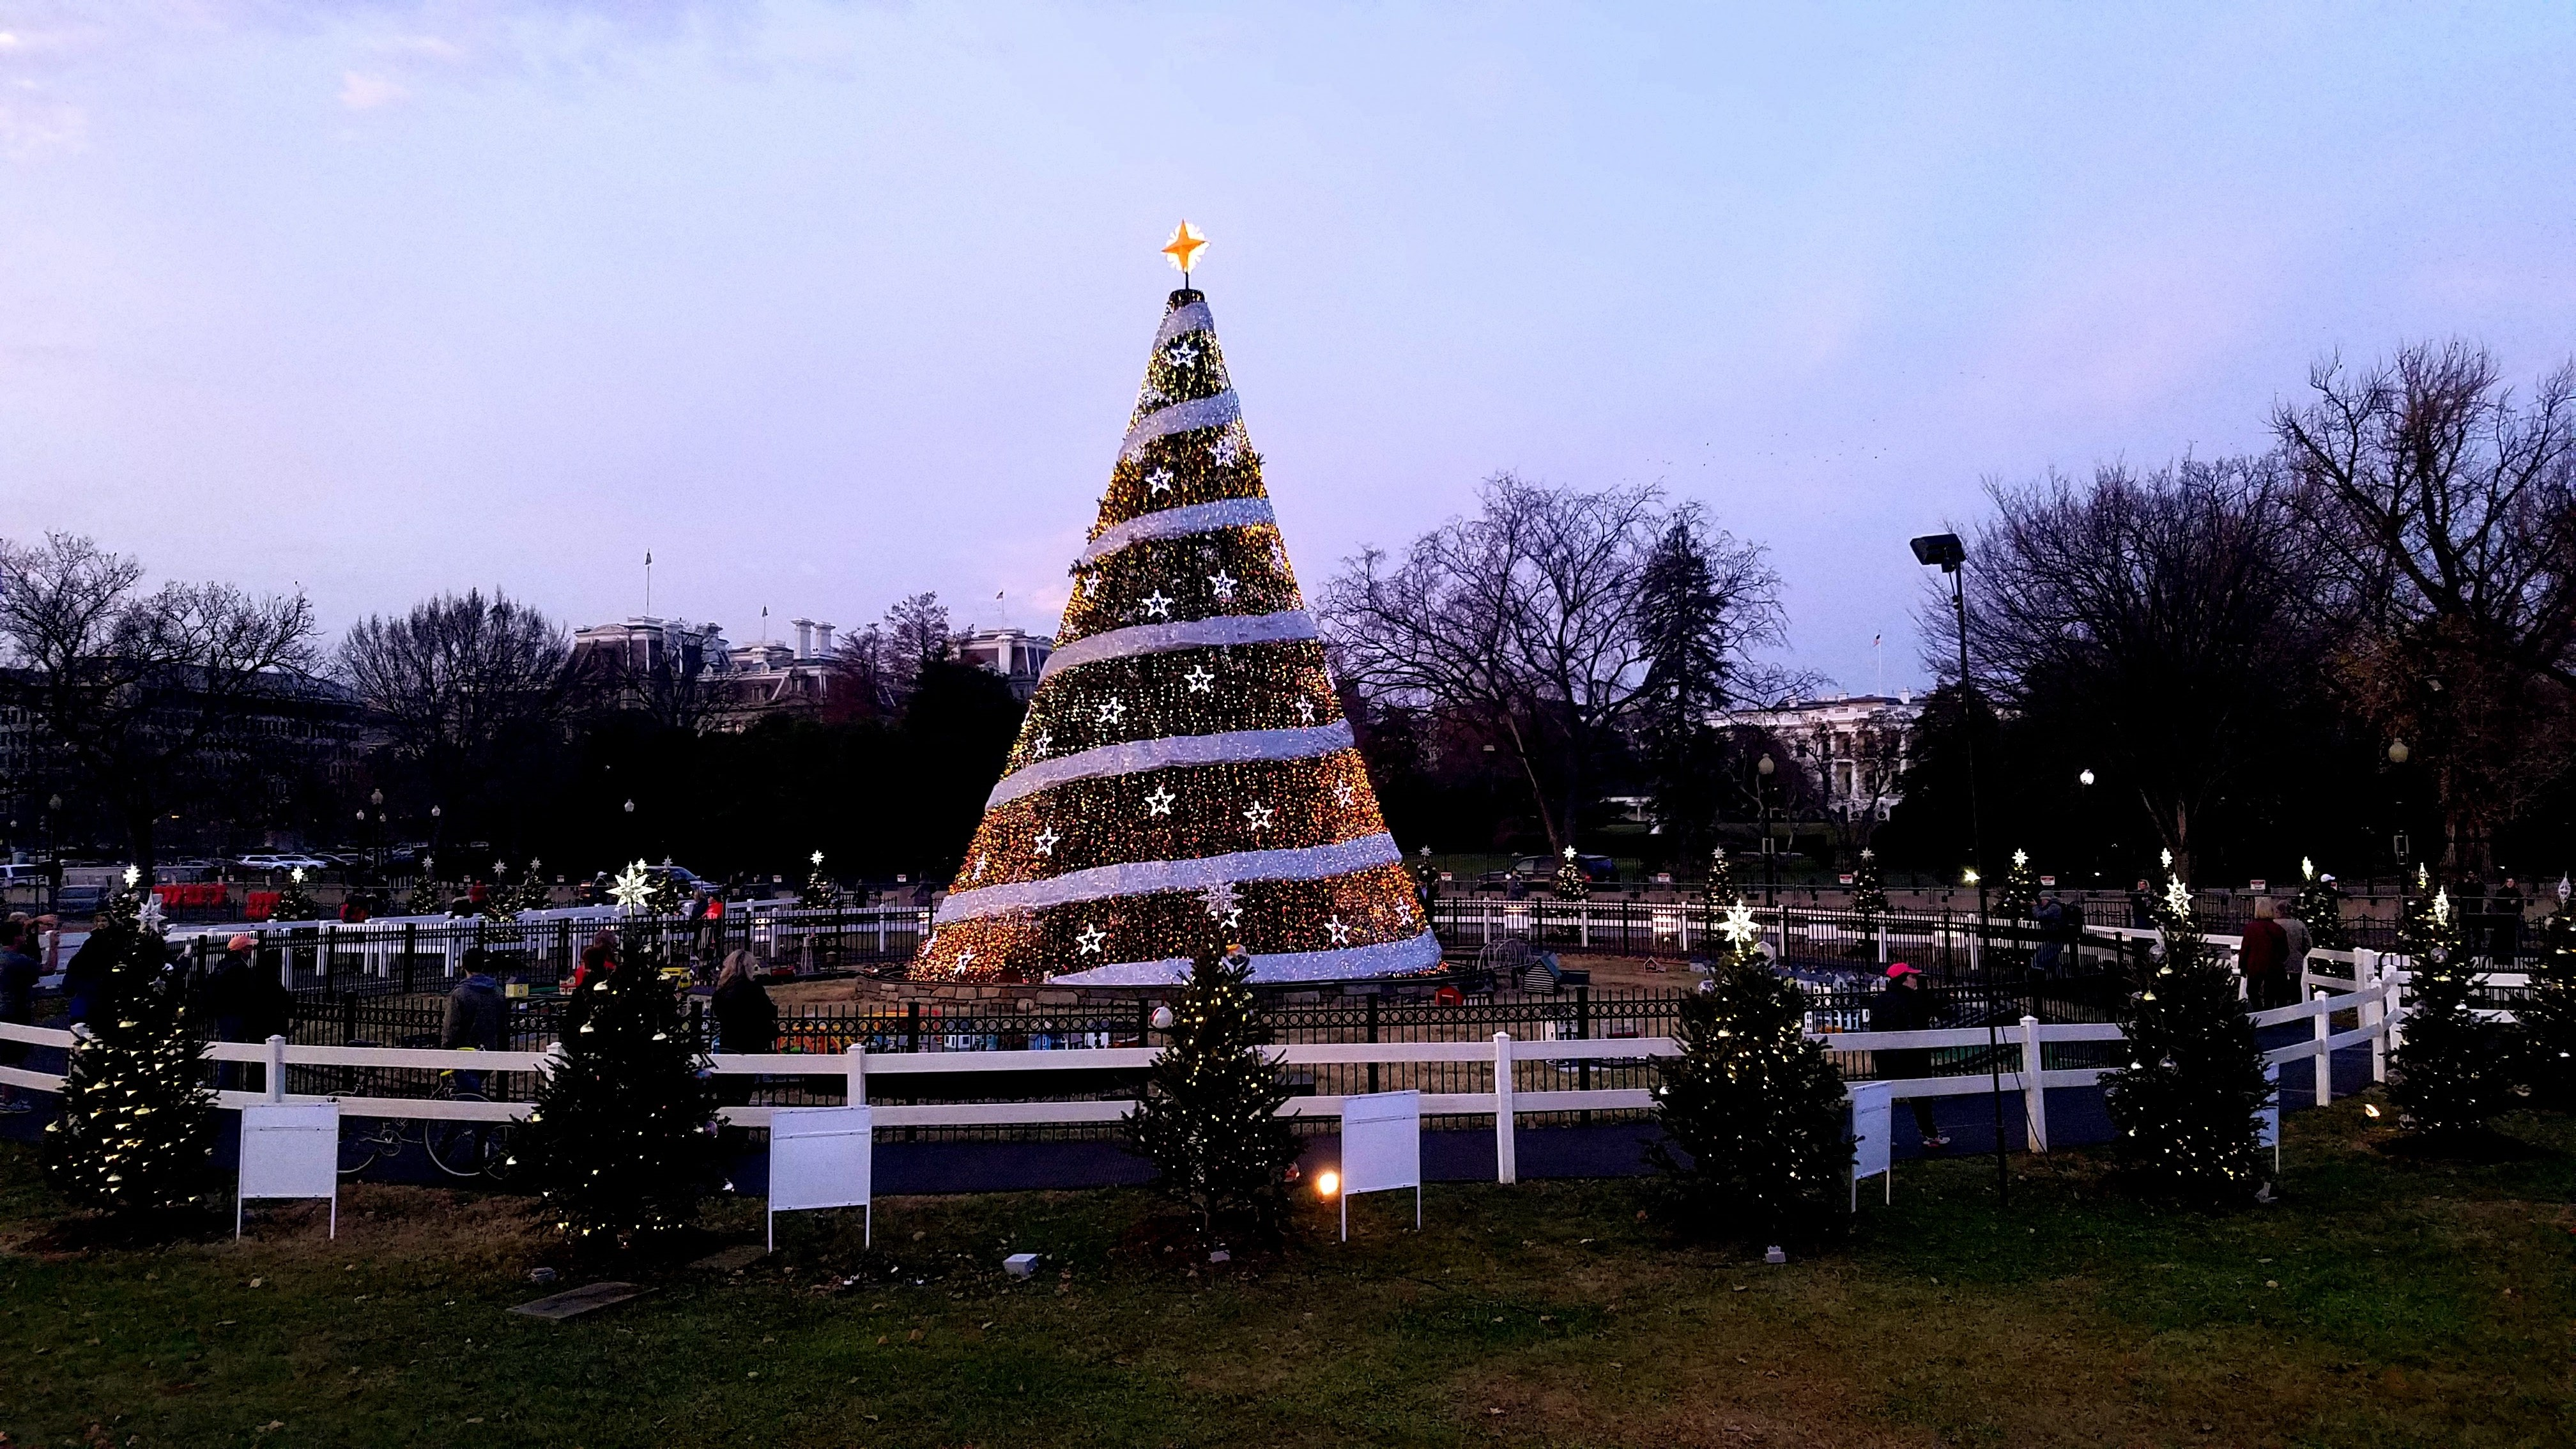 The 2017 National Christmas Tree and surrounding state, district, and territory trees.